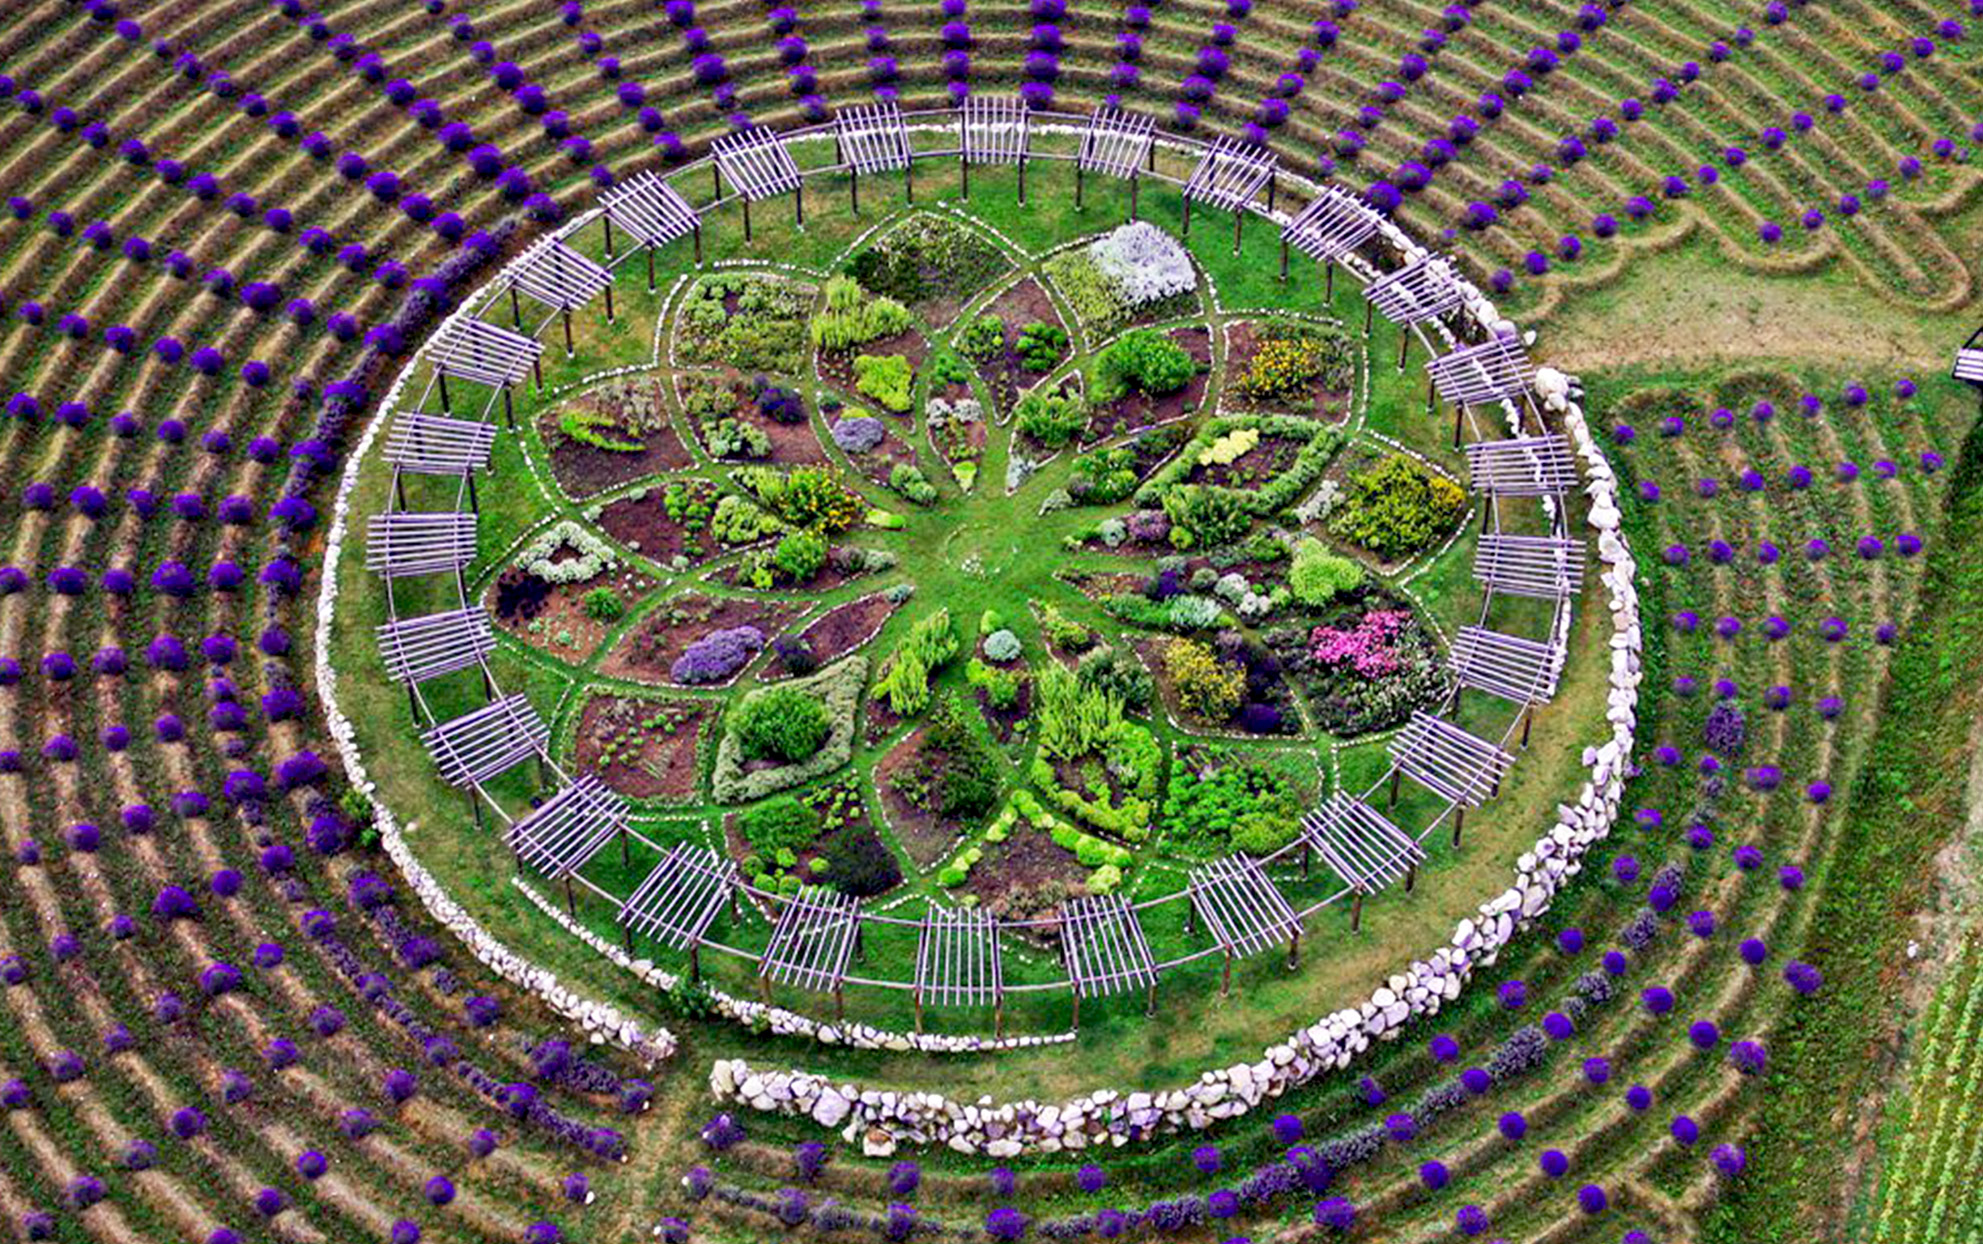 aerial view of the lavender labyrinth